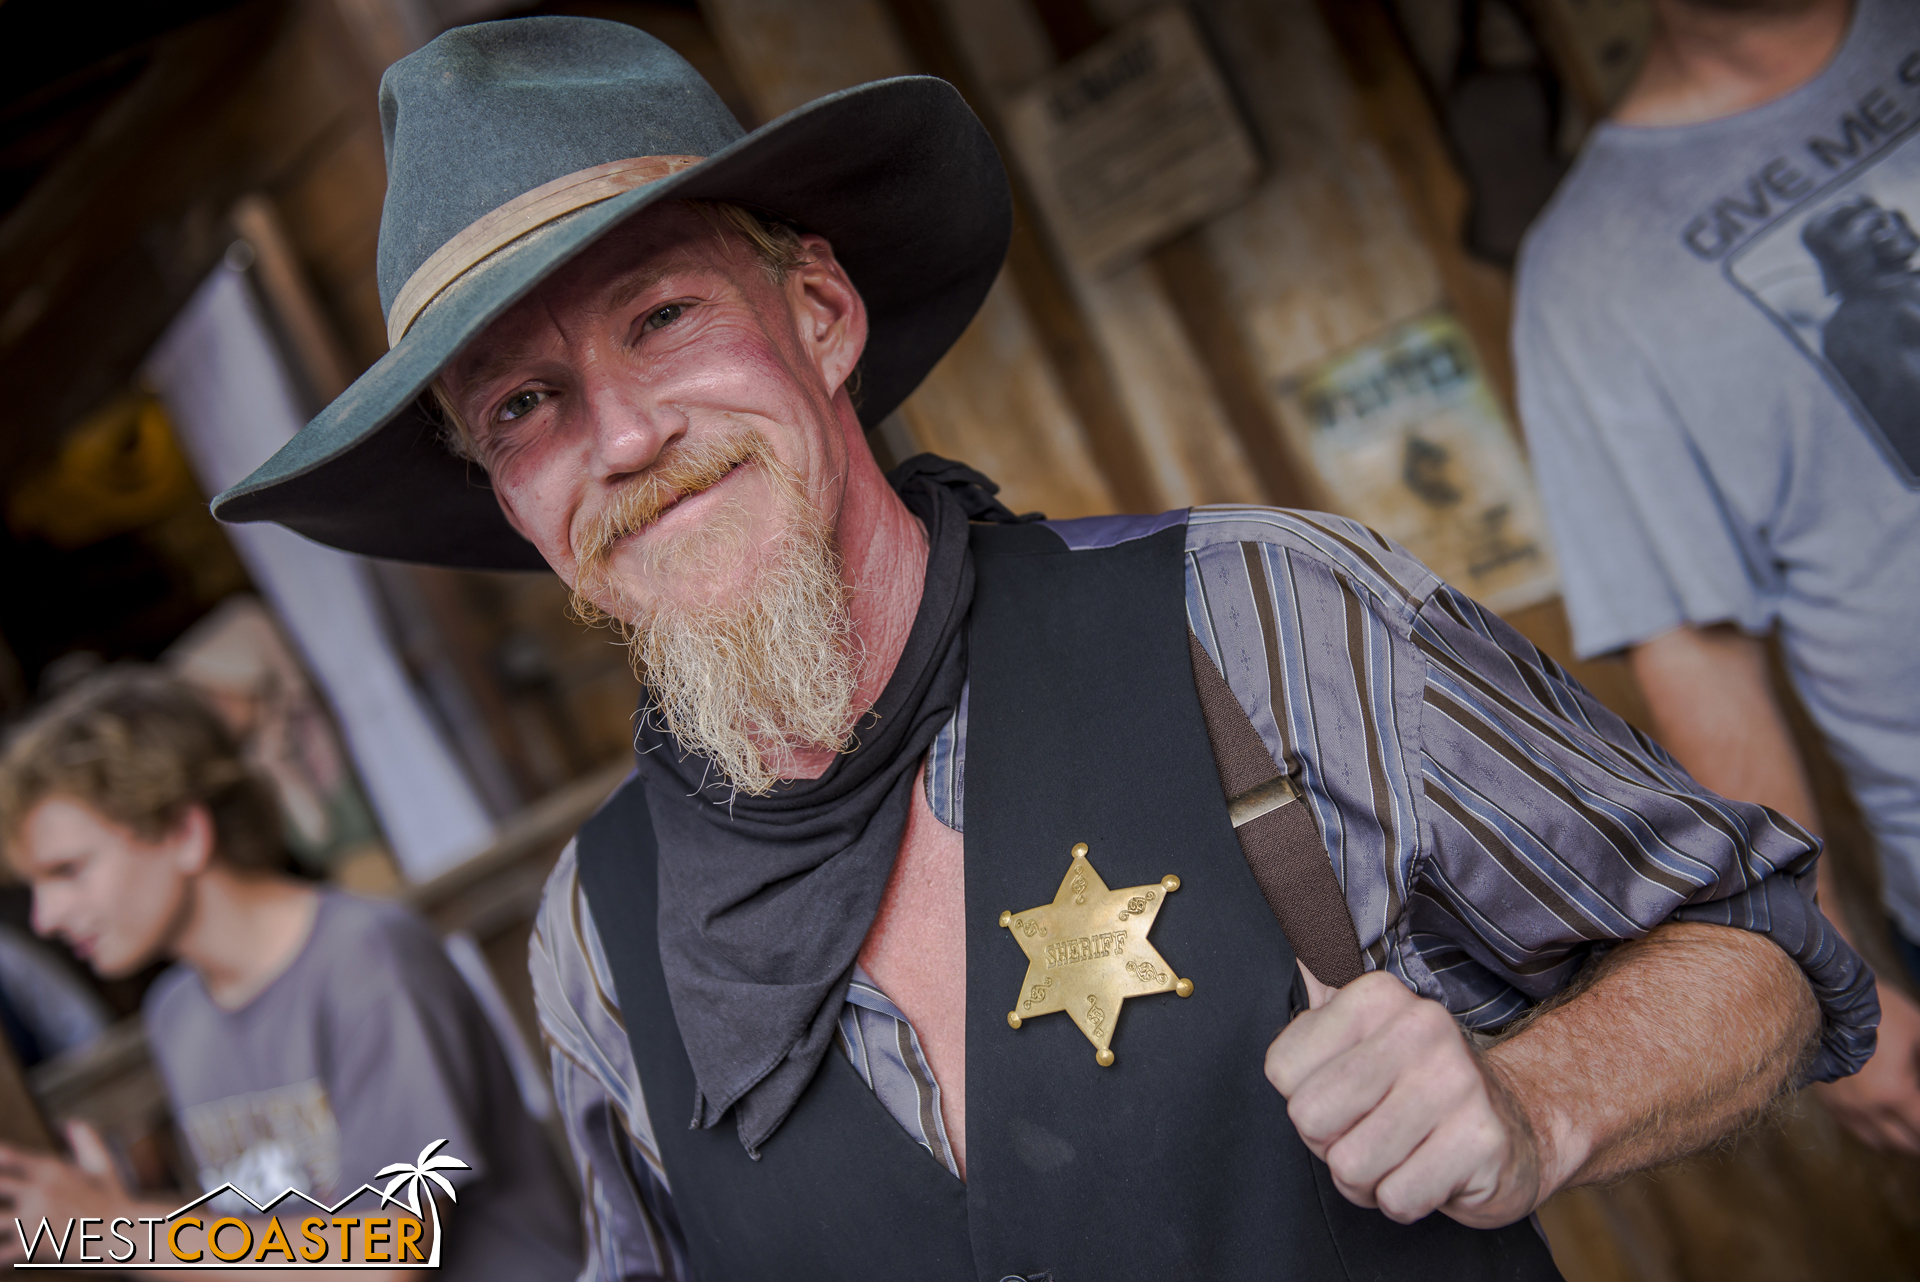 Clay Mayfield makes a fine sheriff (spoilers), but more on that later.